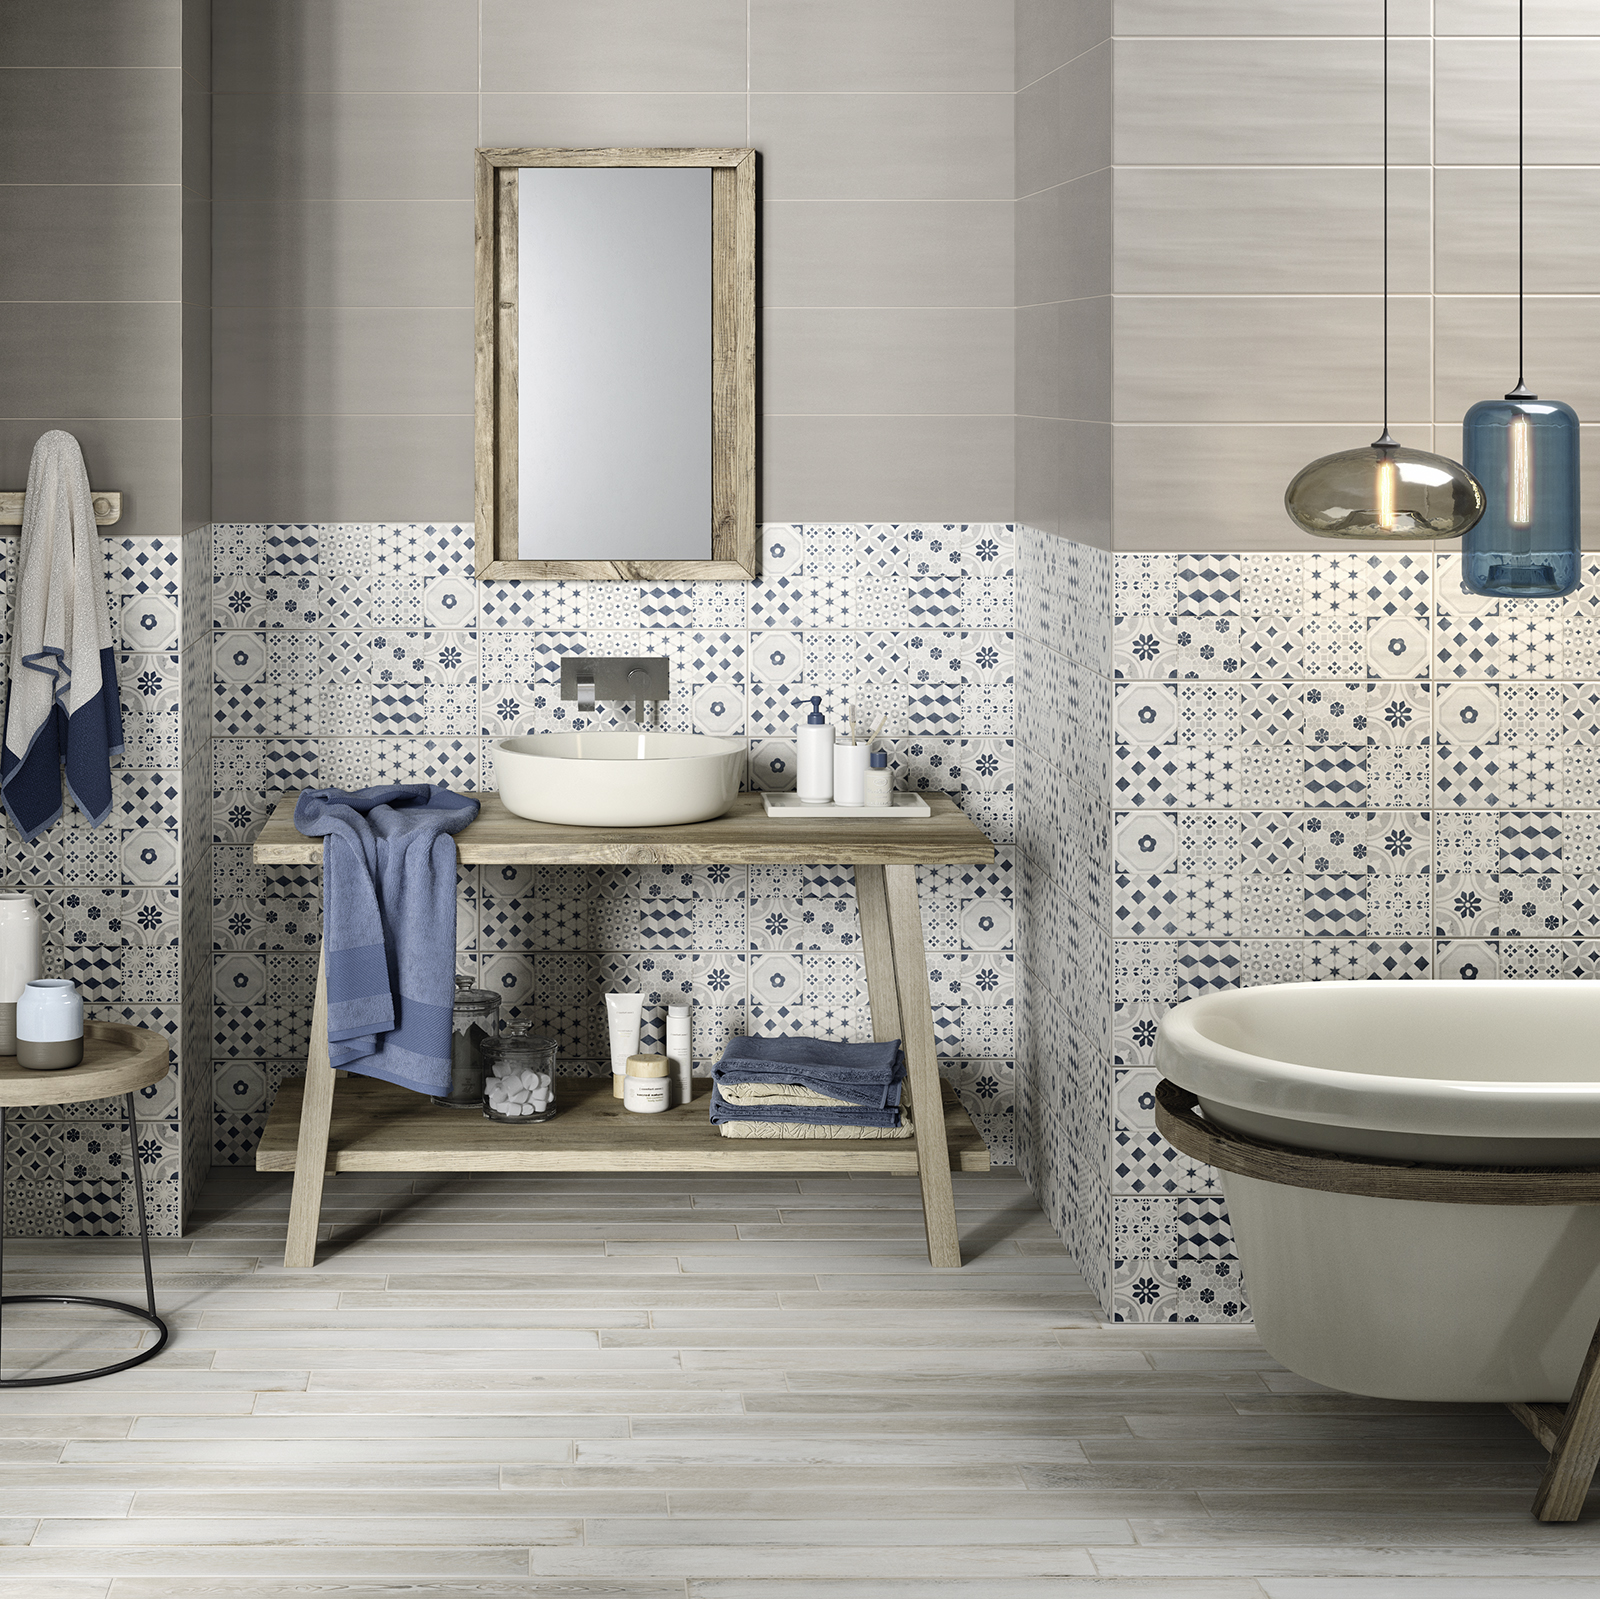 What Paint To Use On Bathroom Walls: Paint - Kitchen And Bathroom Wall Tiling